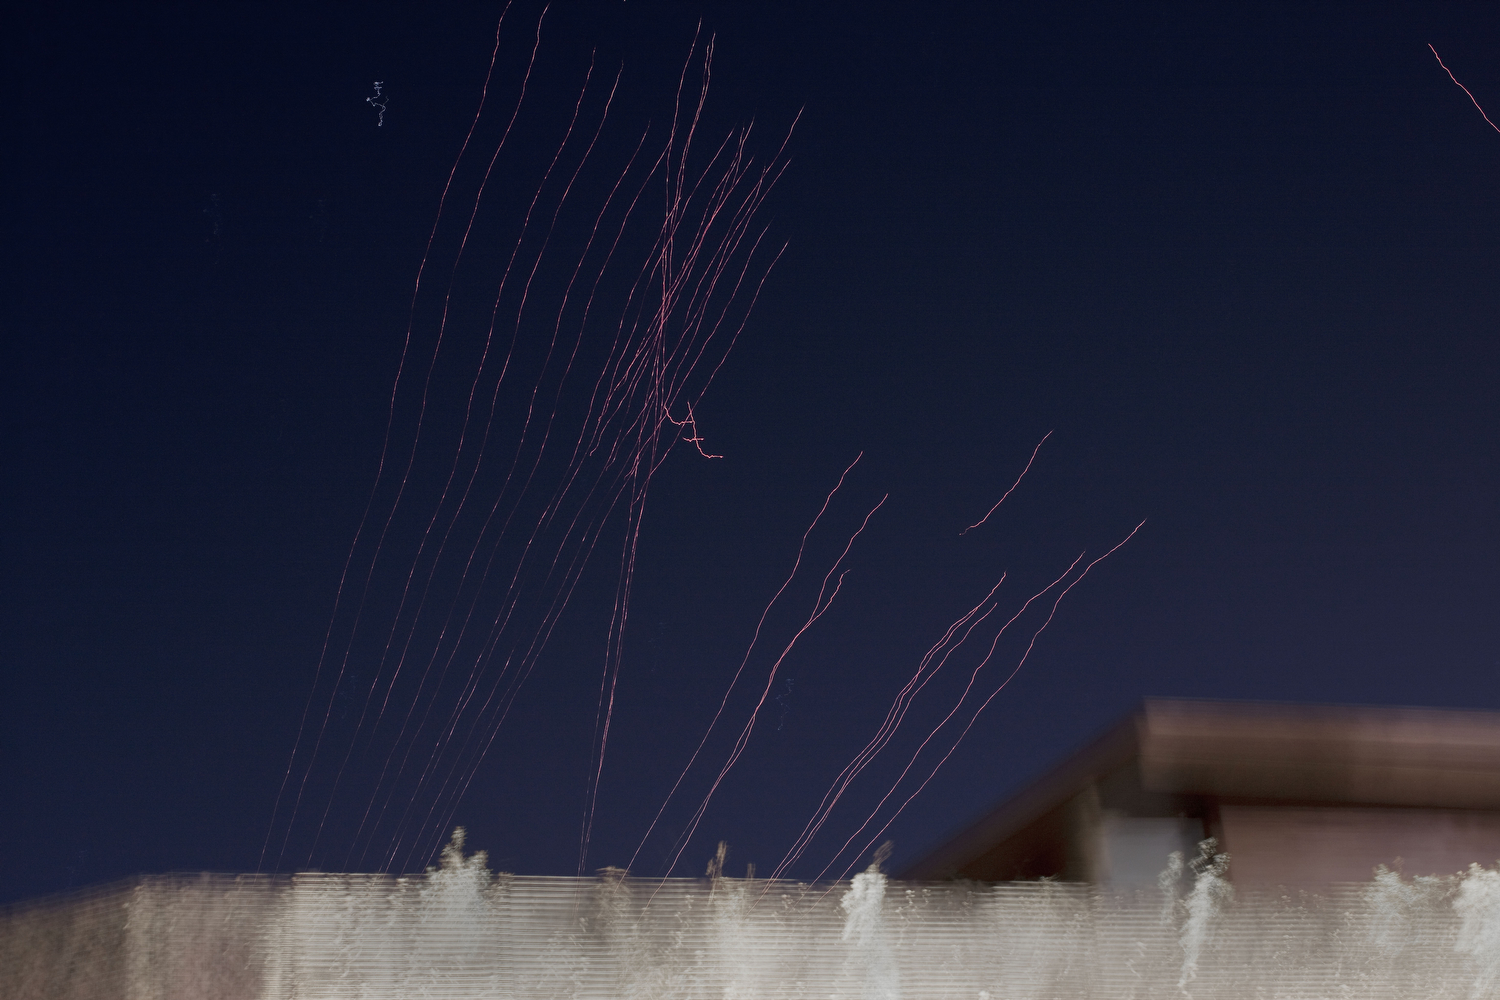 Anti-aircraft fire over Tripoli, March 21, 2011.